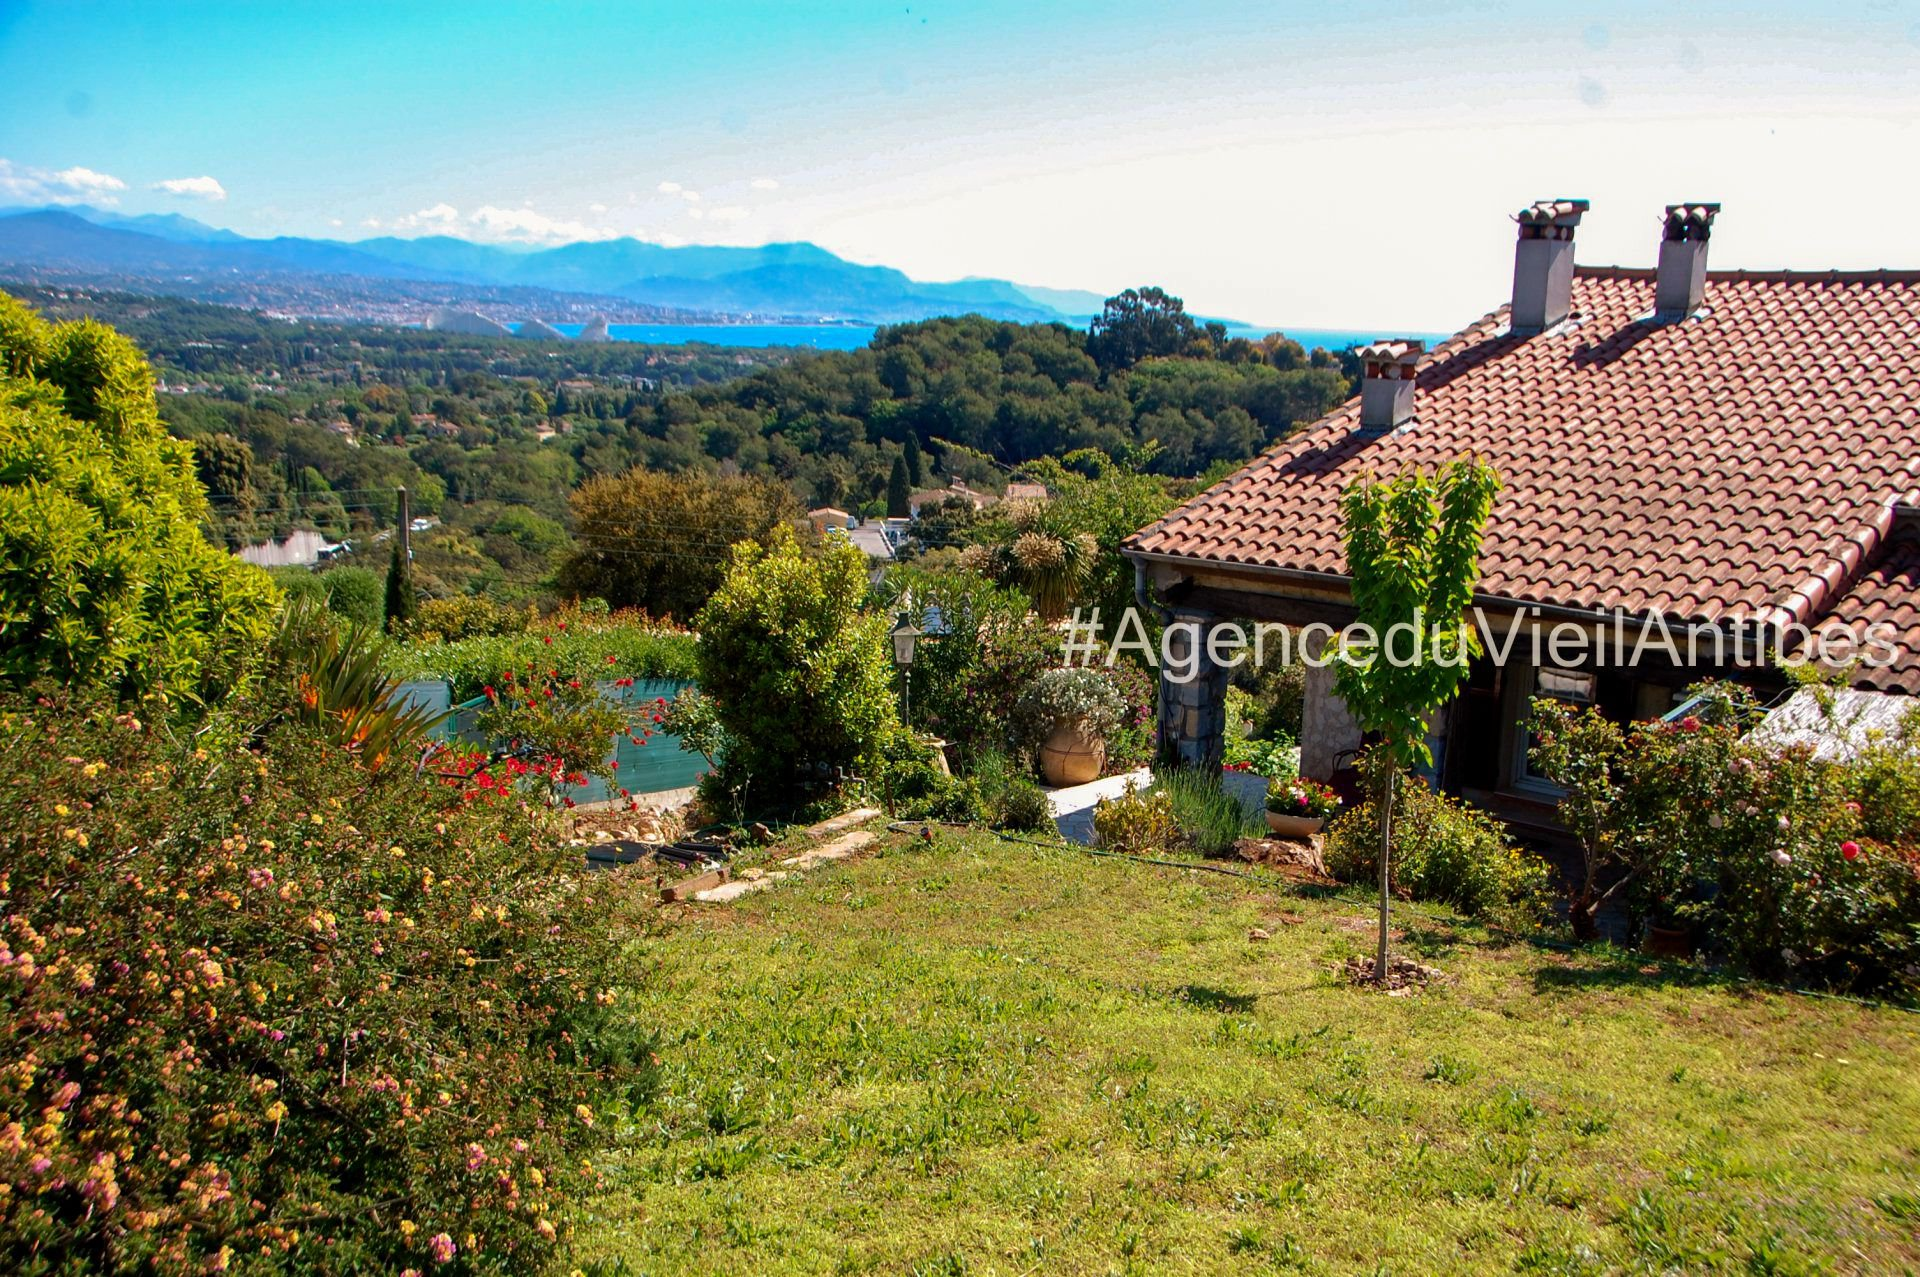 HOUSE IN THE HEIGHT OF ANTIBES - 220 M2 / 1800 M2 OF LAND